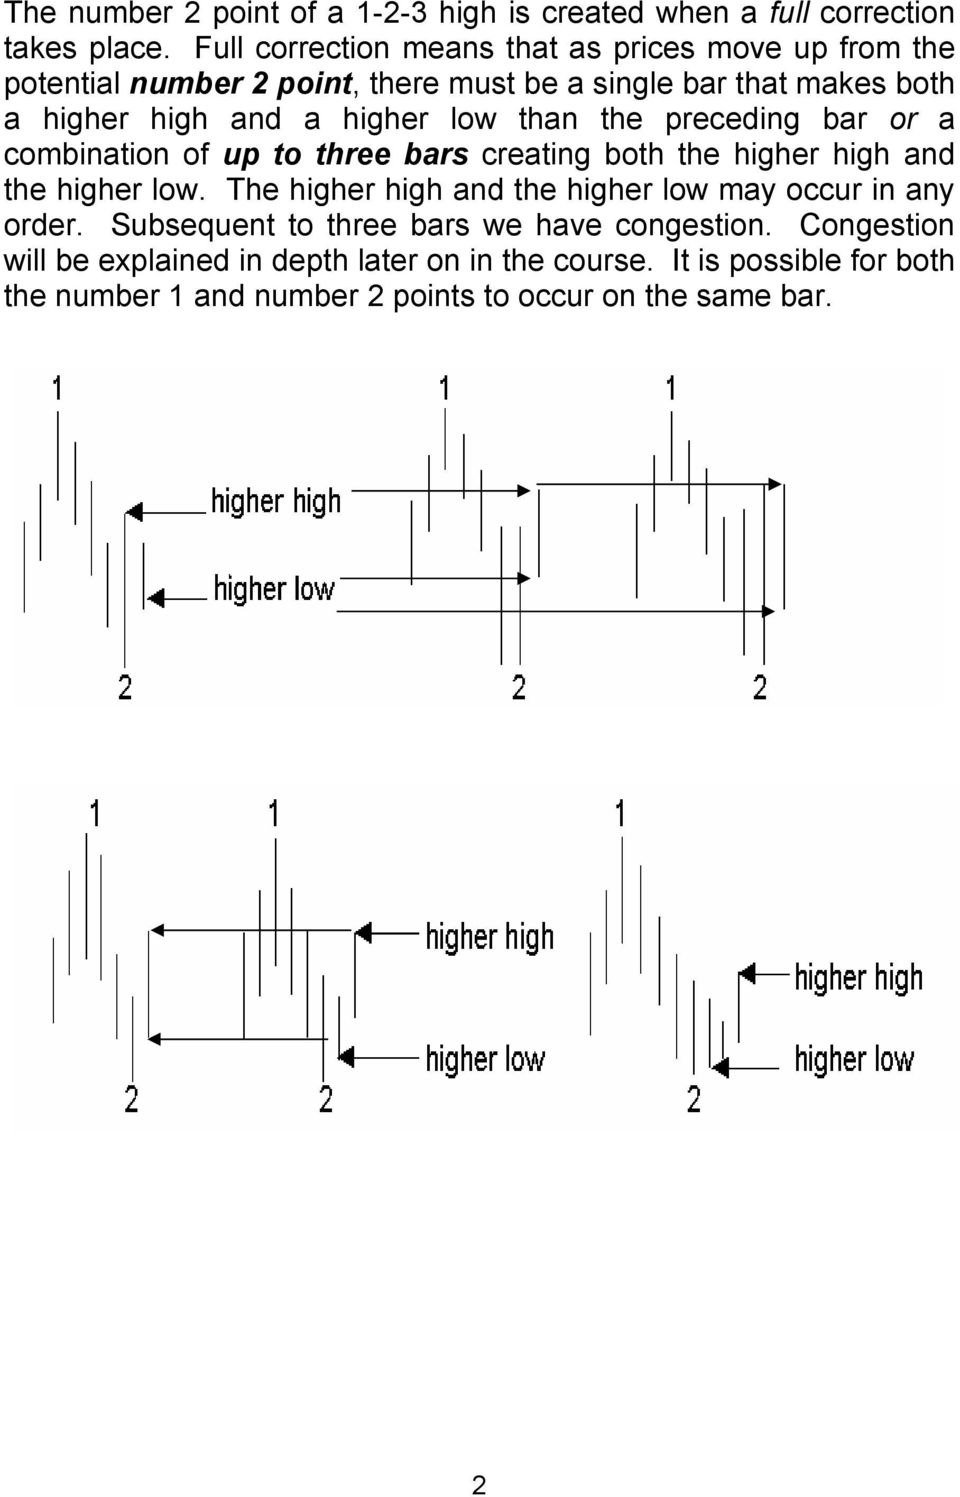 higher low than the preceding bar or a combination of up to three bars creating both the higher high and the higher low.